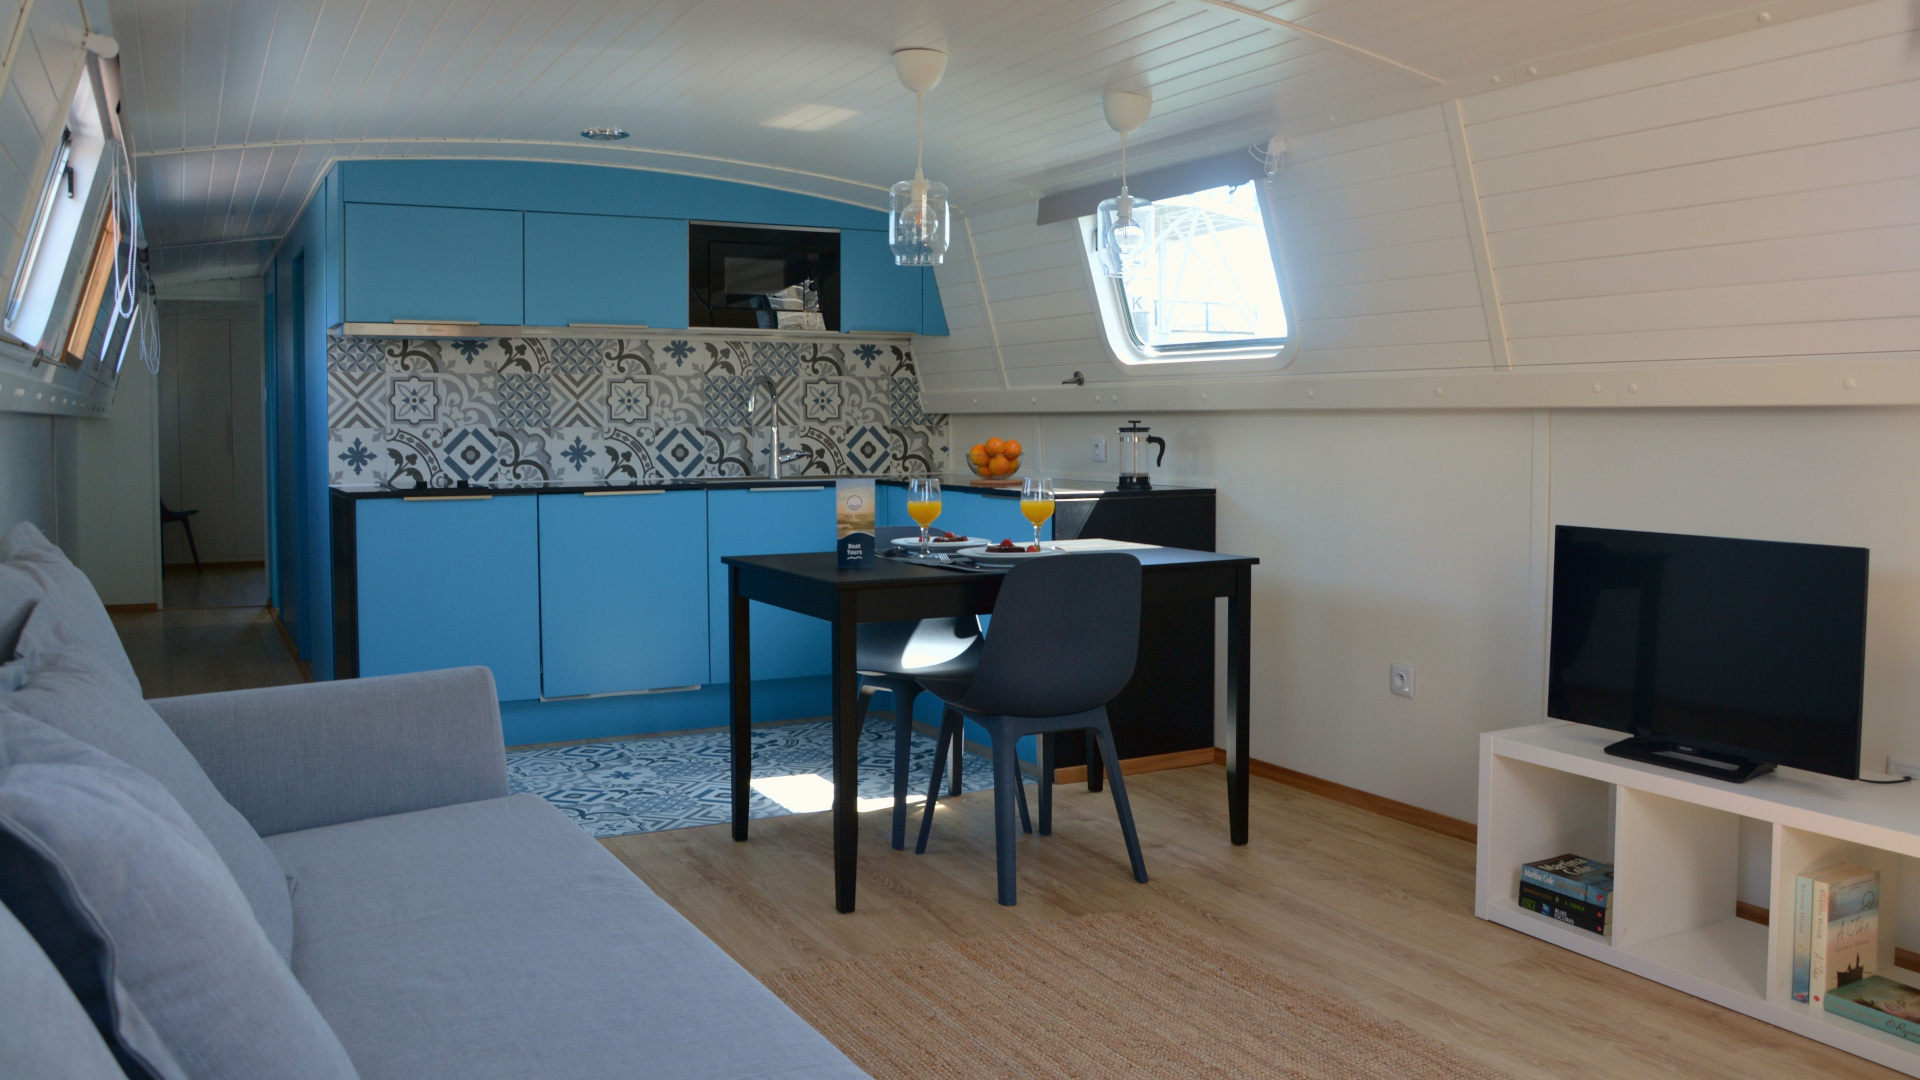 Narrowboat - kitchenette and living room